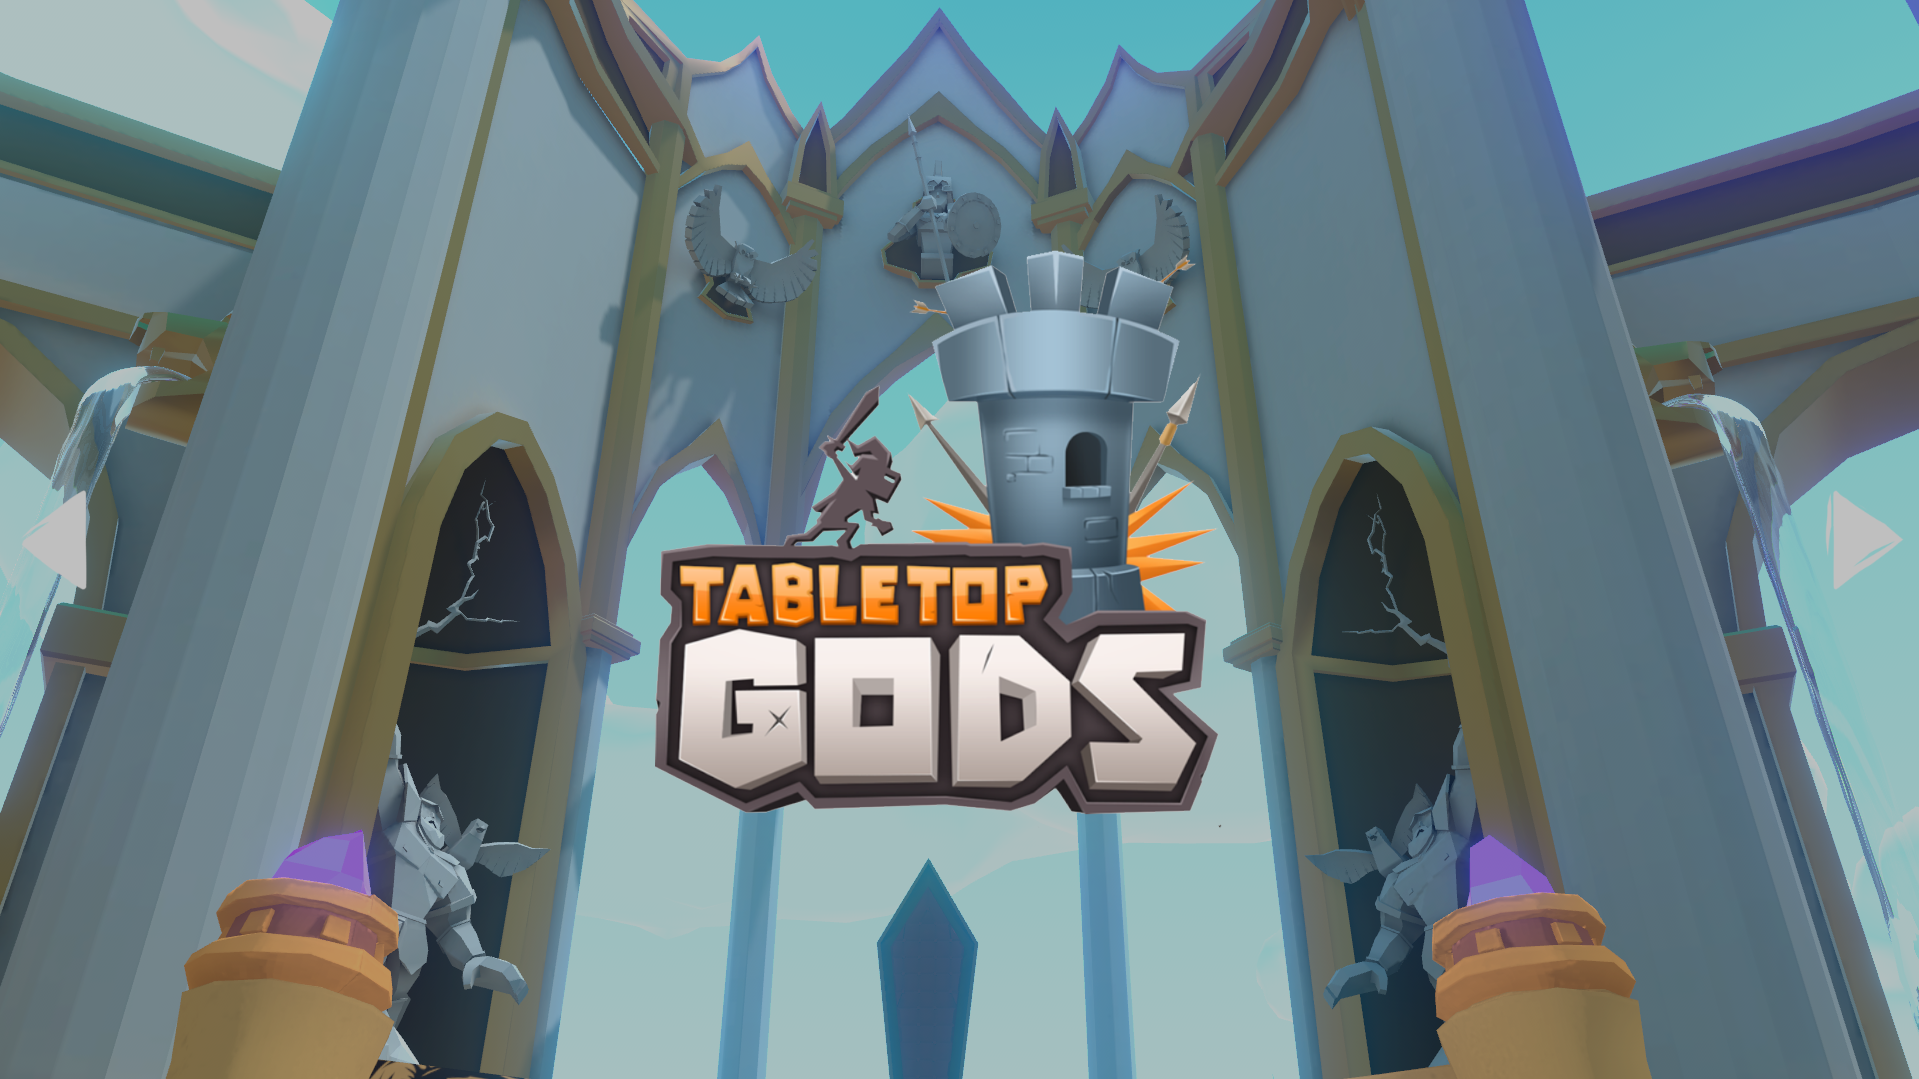 Tabletop Gods Indie Game Underplayed Gem Temple